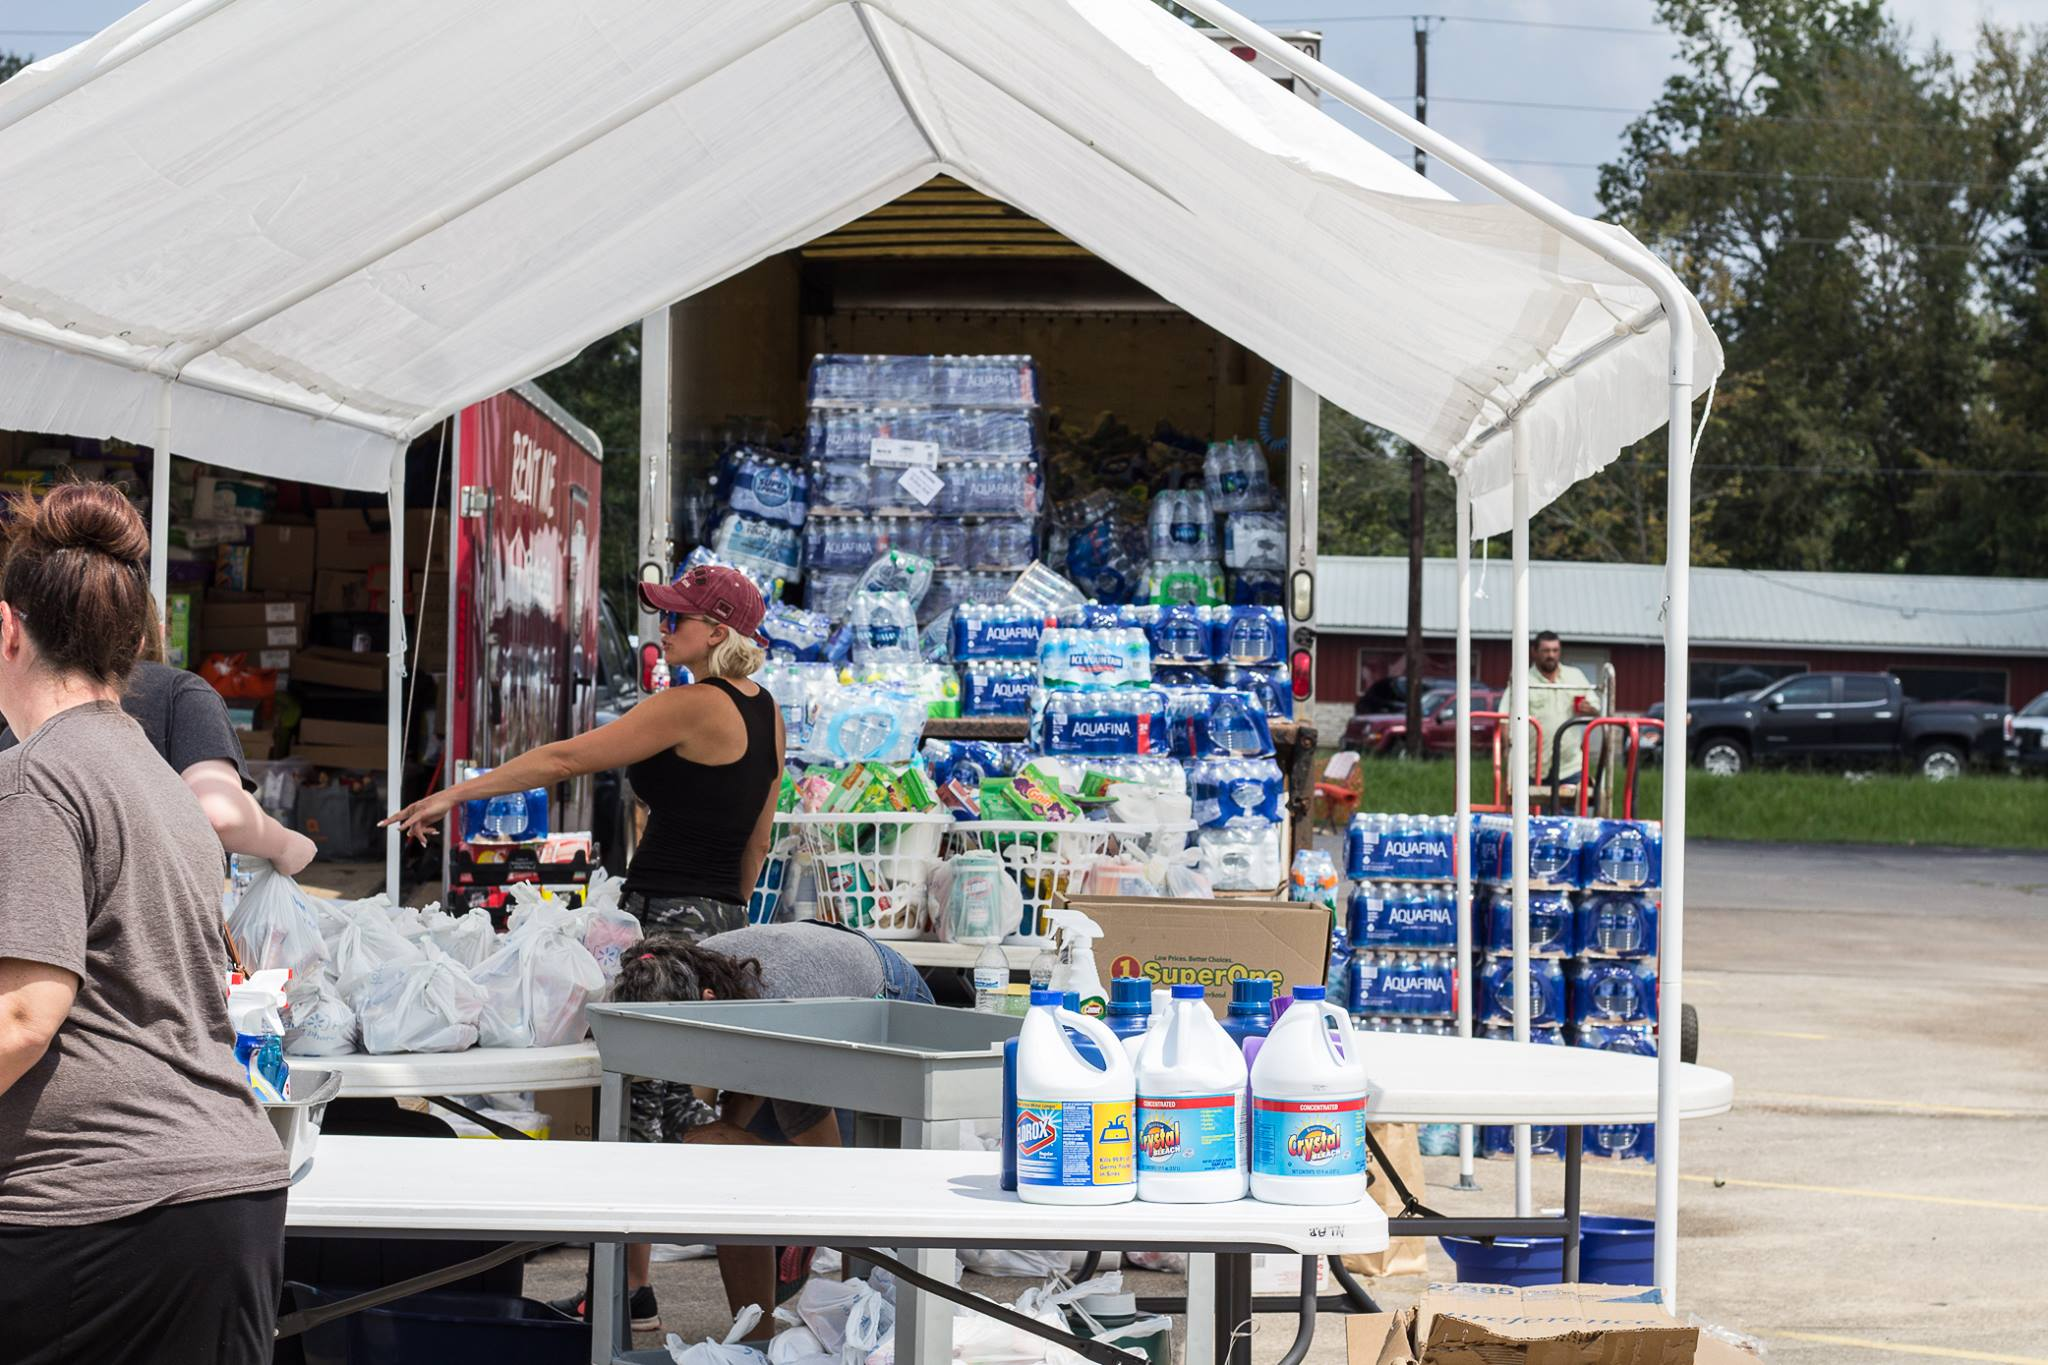 Shylo Eckstrom helps organize efforts to unload trucks that are full of water cases. Photo by Kim Northfield.